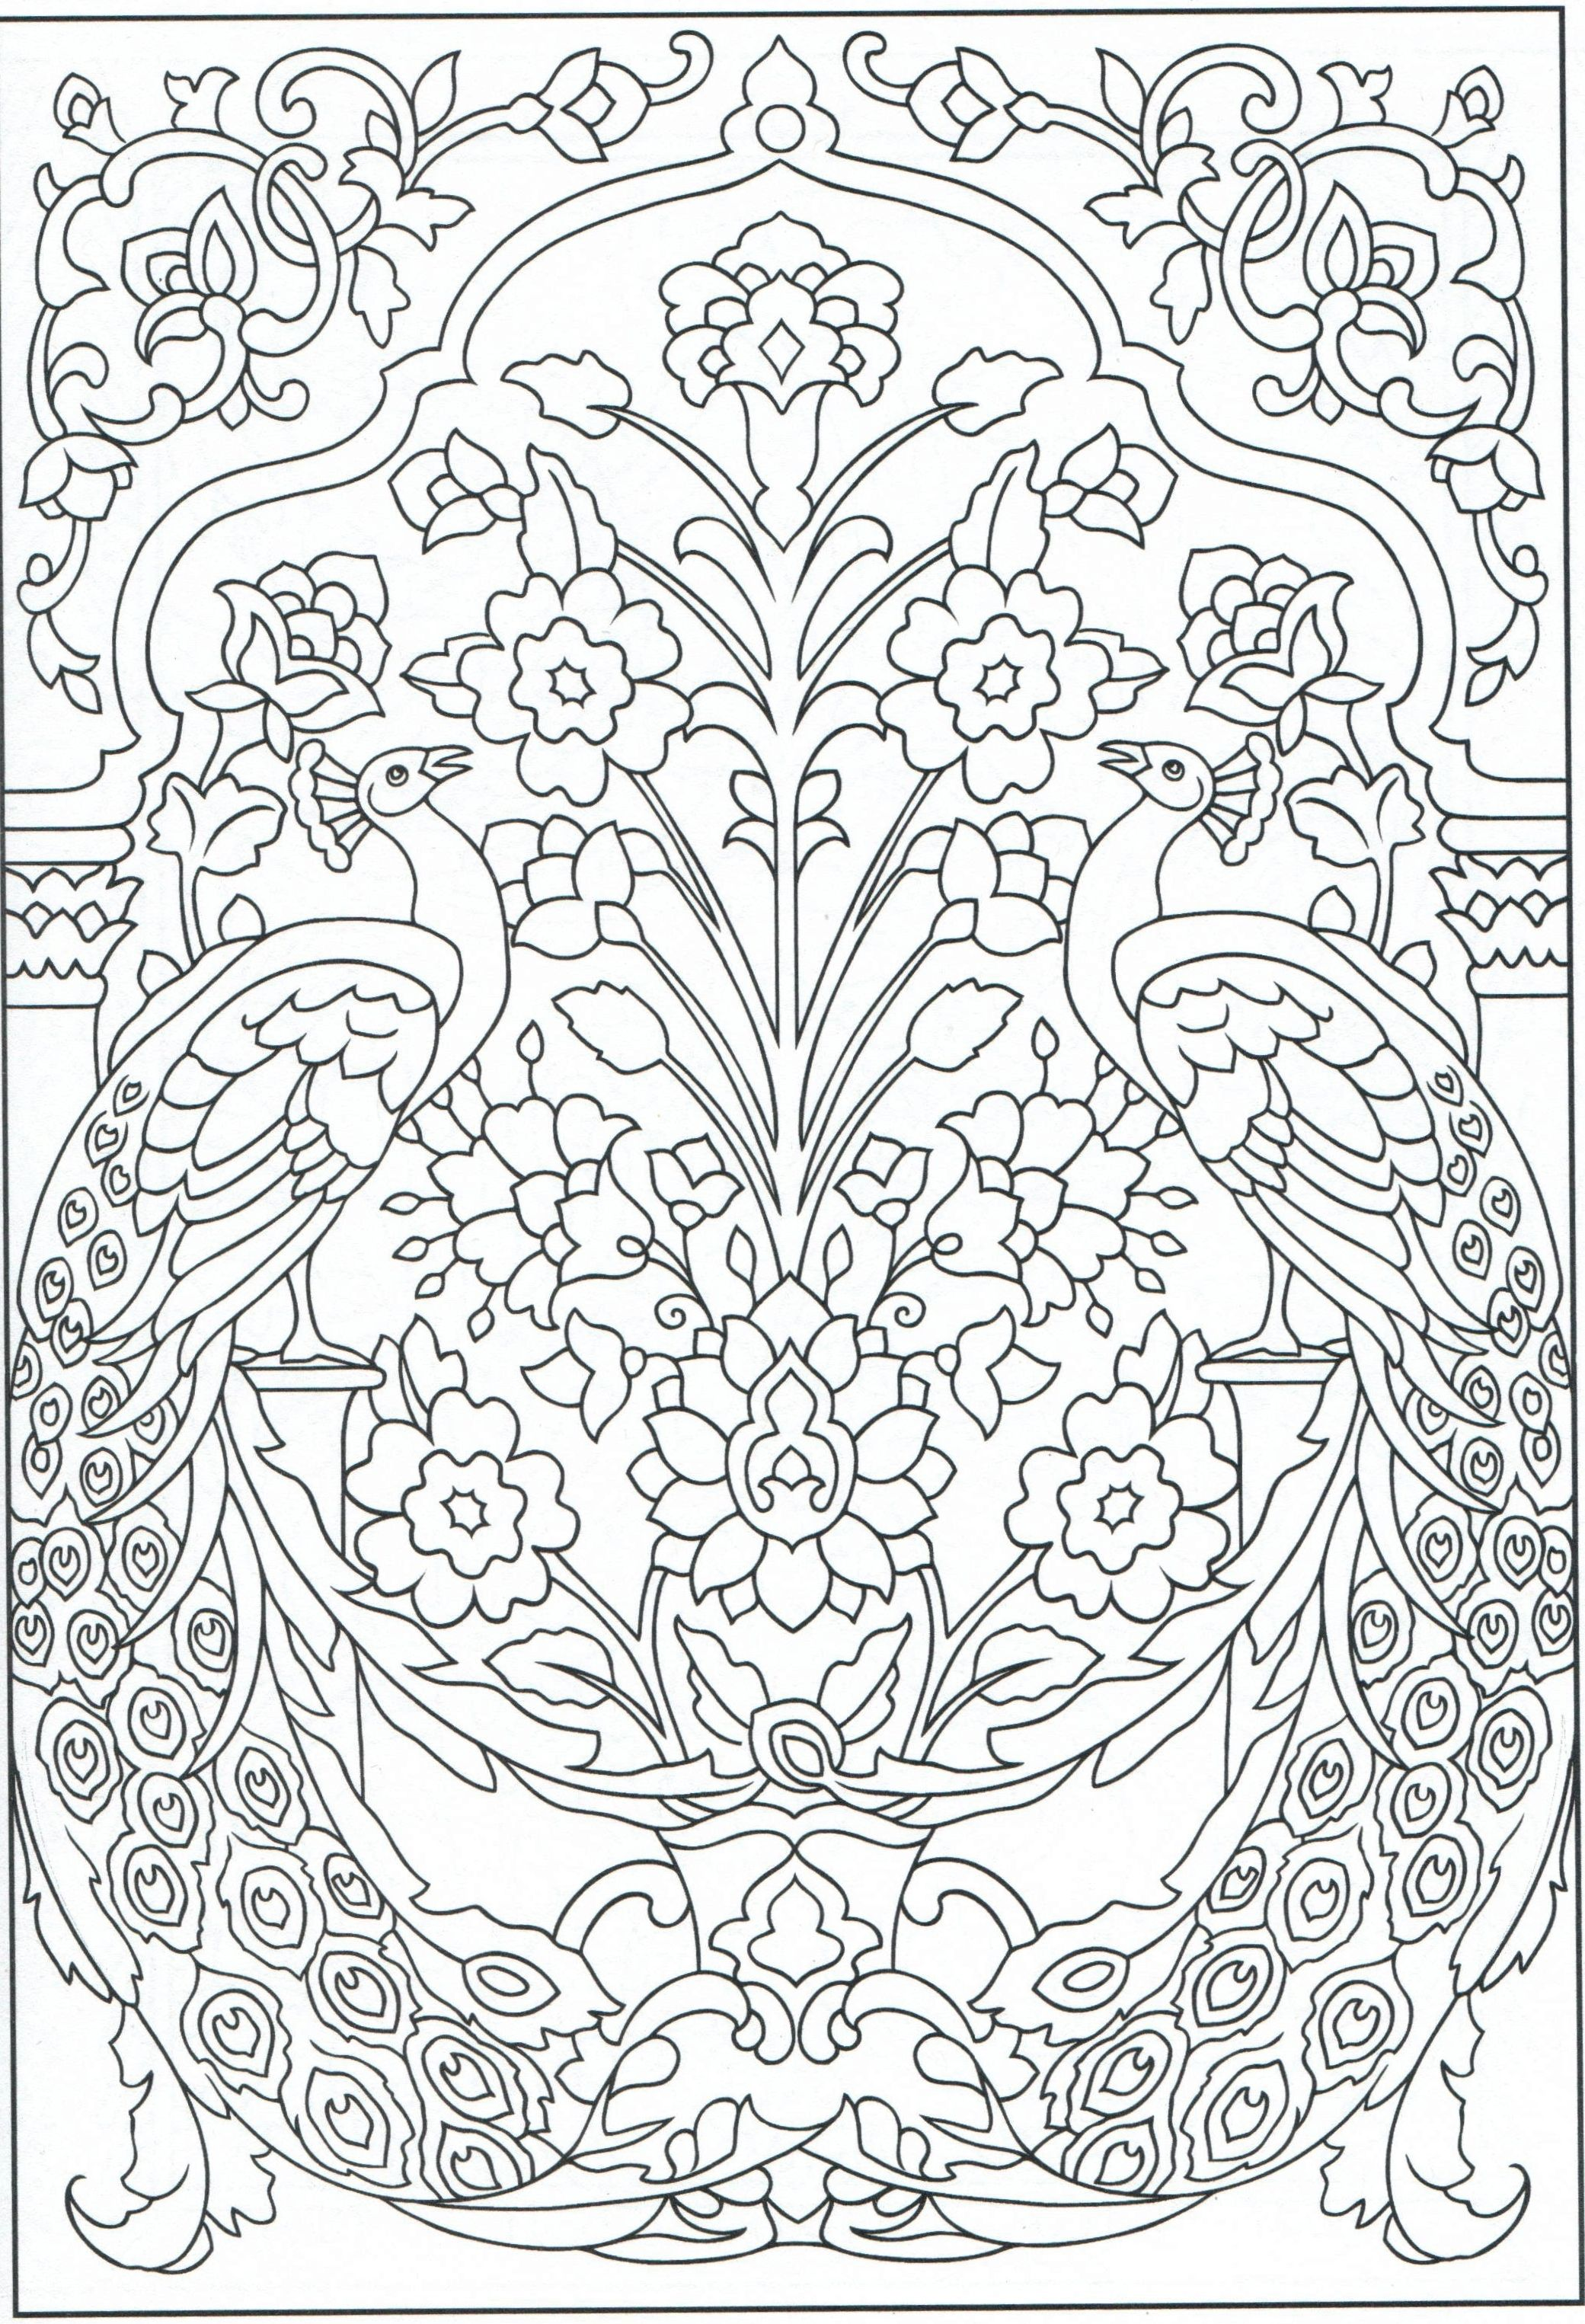 Peacock Coloring Page For Adults 1 31 Peacock Coloring Pages Designs Coloring Books Colouring Pages